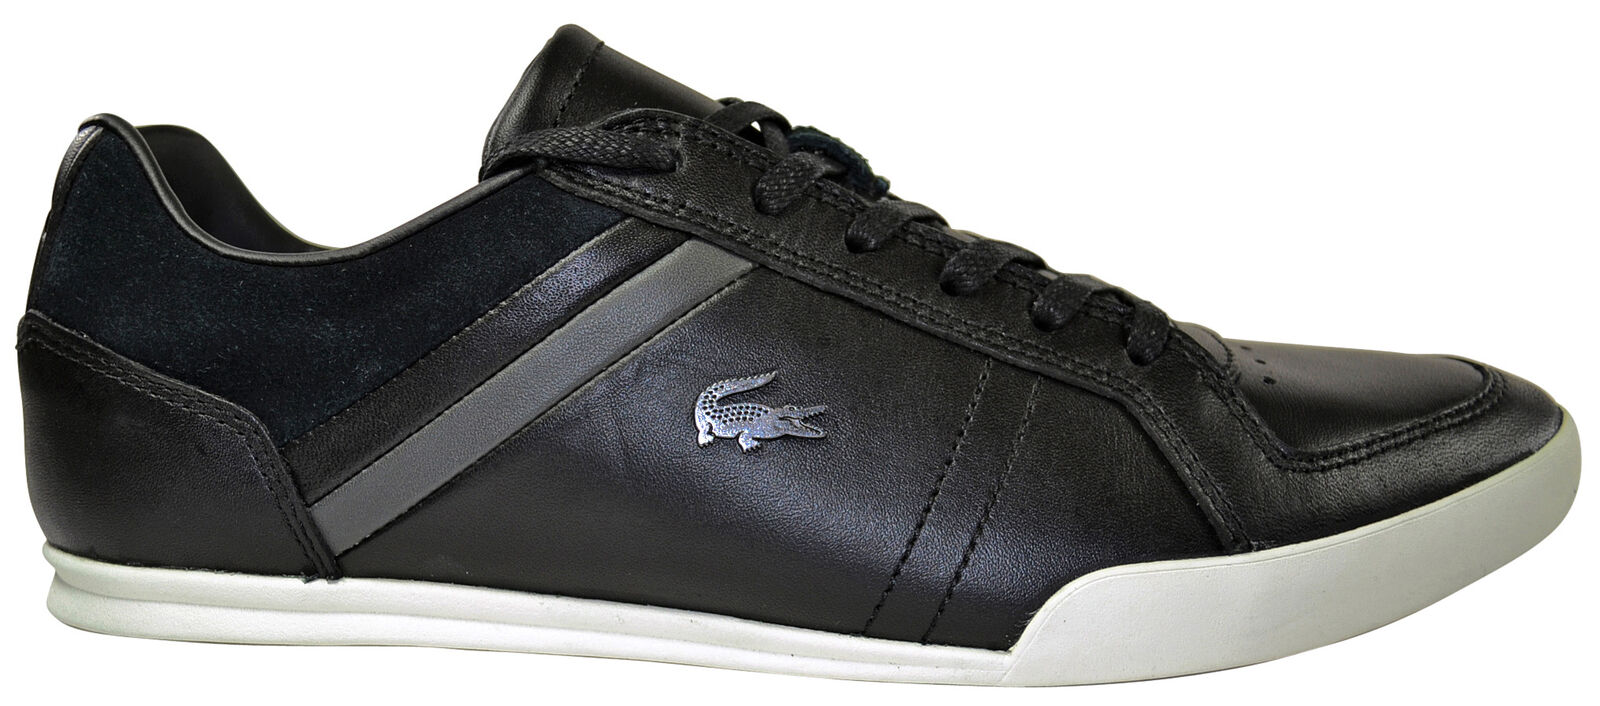 Lacoste Figuera black/dark grey leather Schuhe/Sneaker schwarz